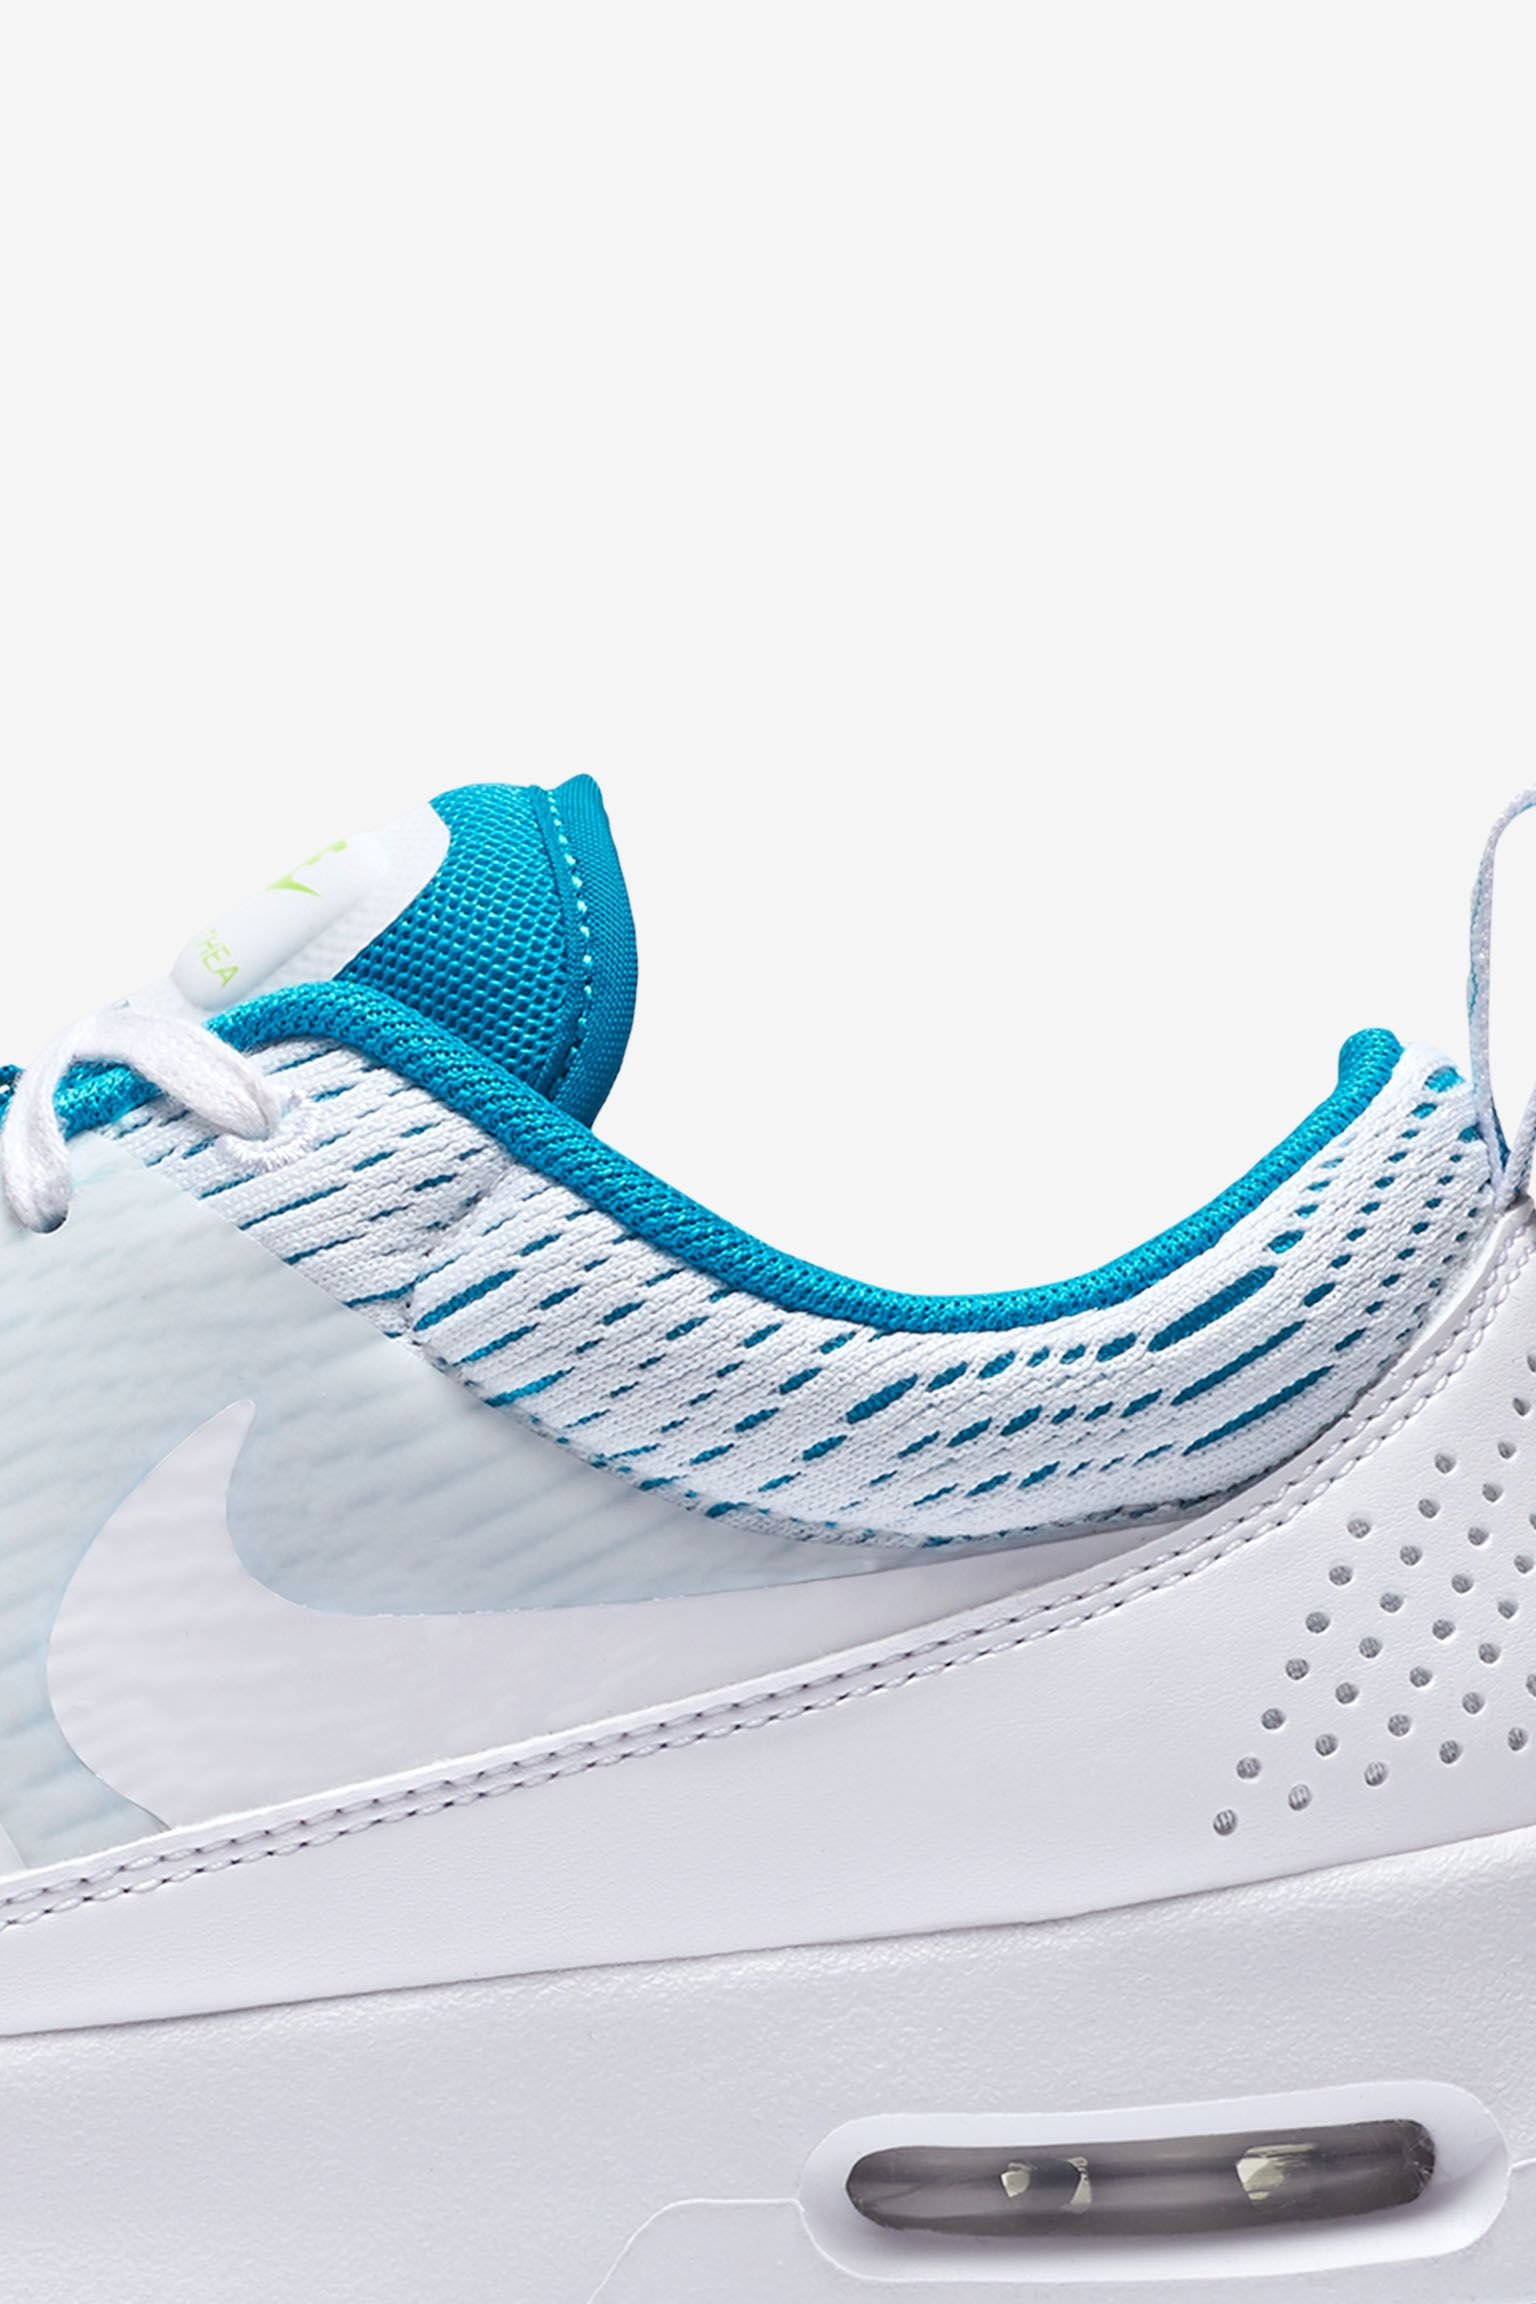 Women's Air Max Thea 'White & Blue Lagoon'